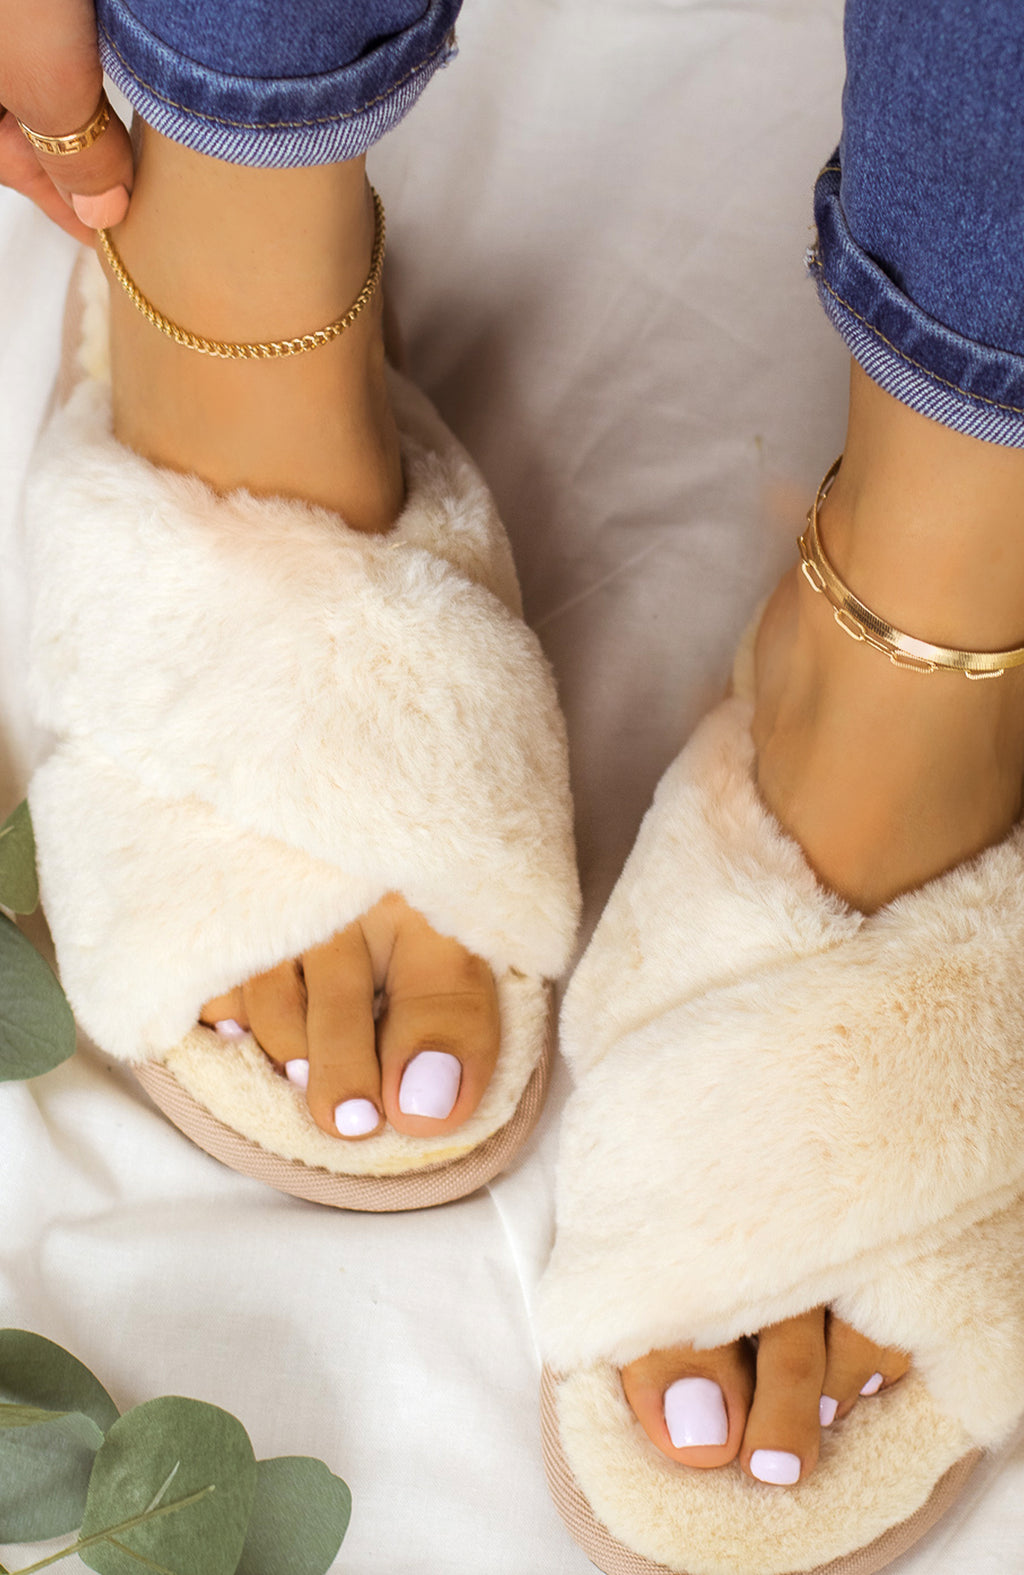 Easy Lounging - Beige Sandals